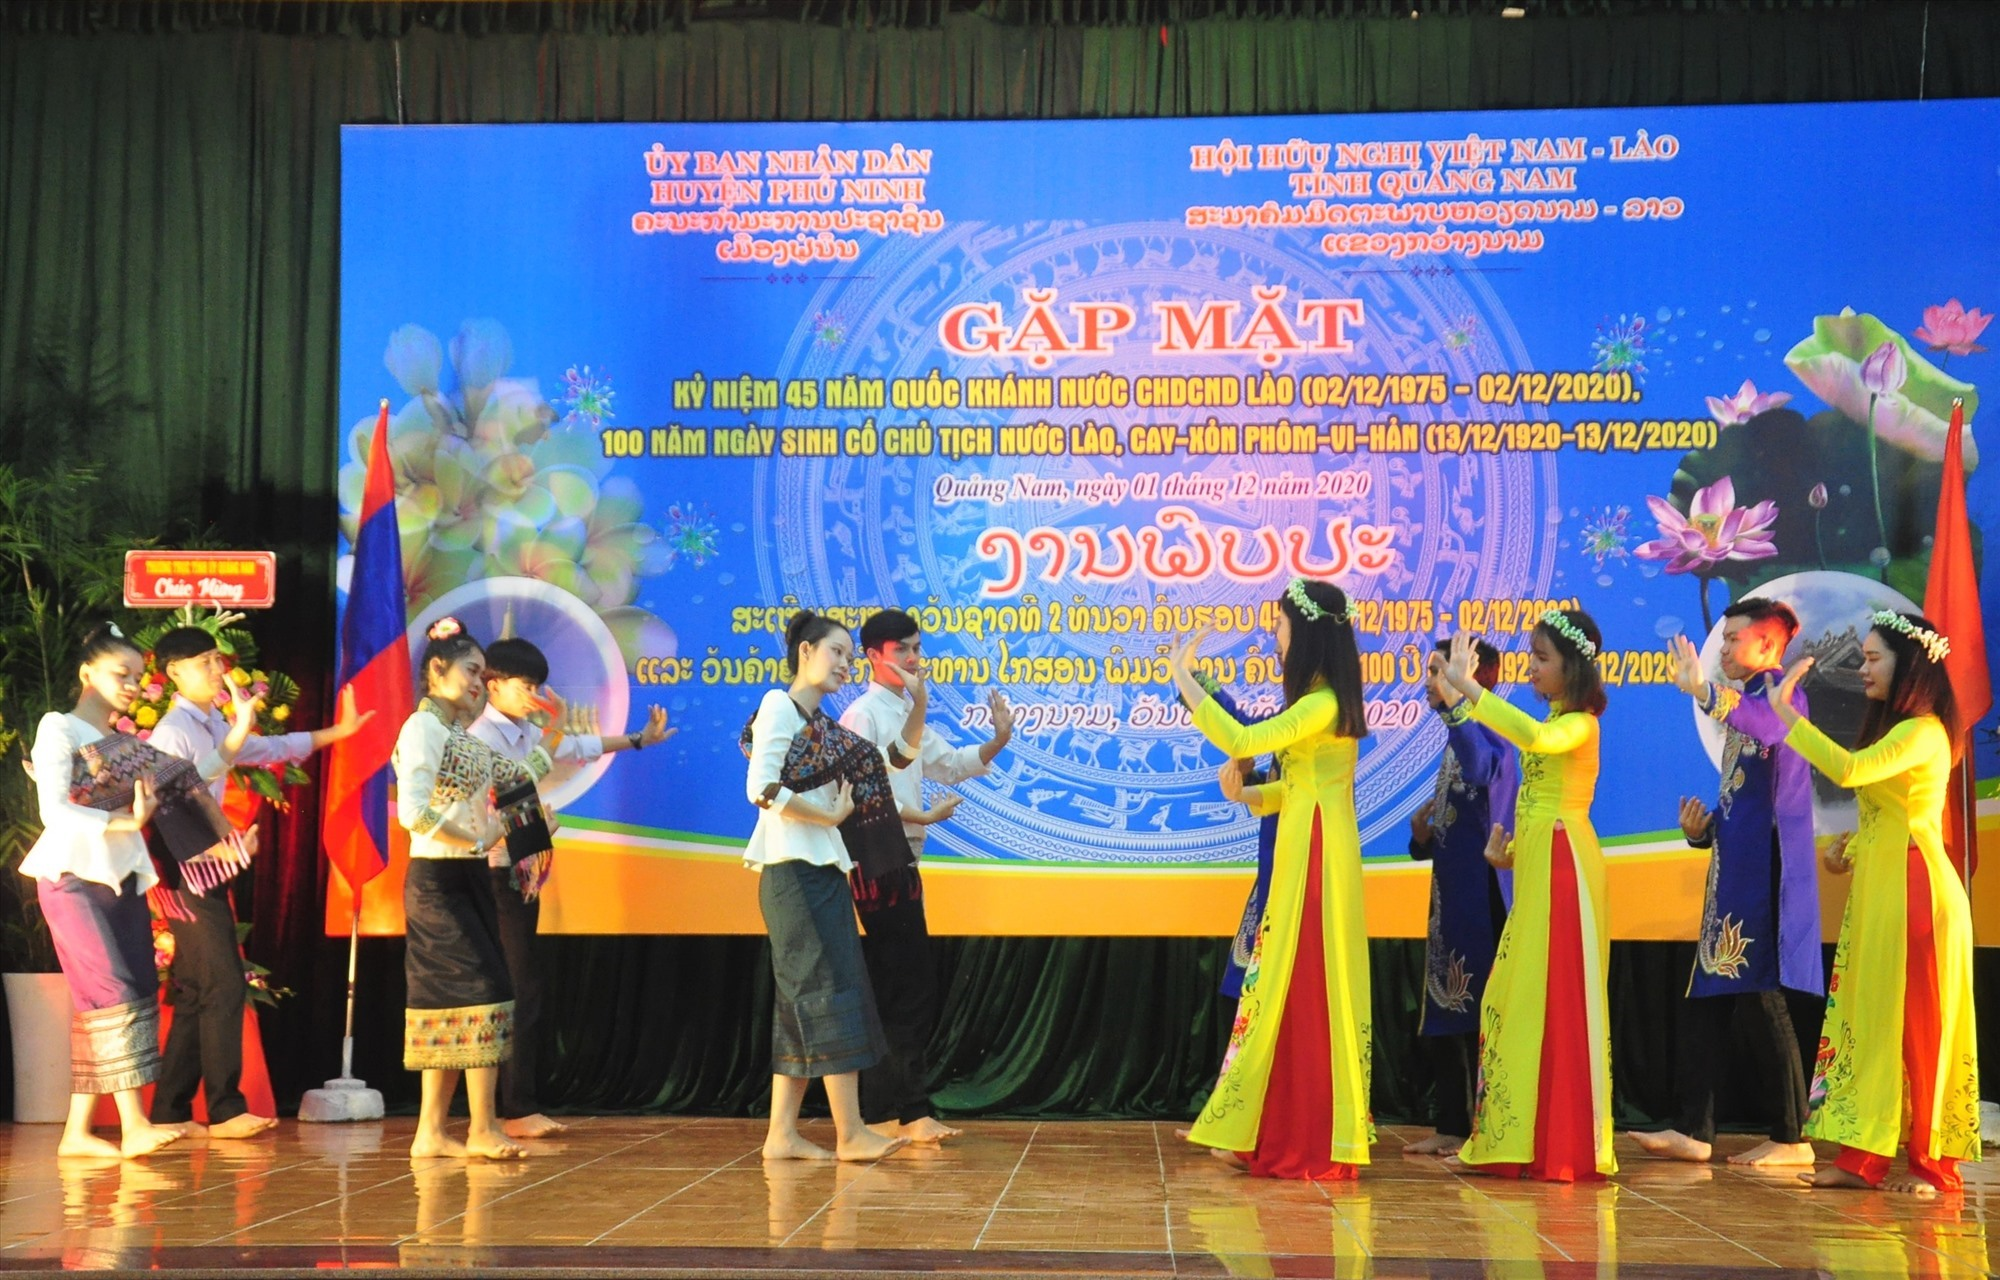 An artistic performance by Lao students from Quang Nam University at the event